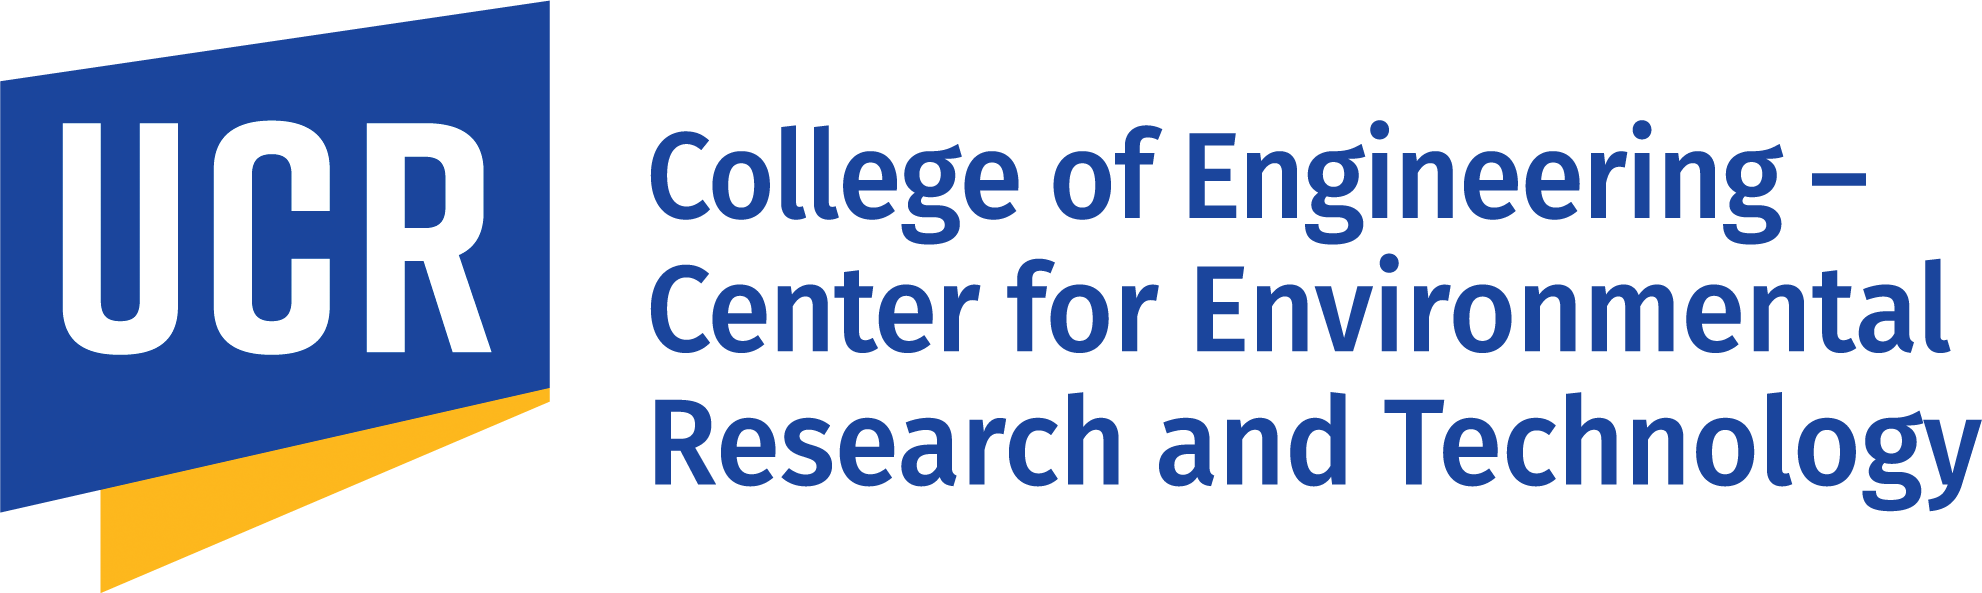 UCR College of Engineering - Center for Environmental Research and Technology